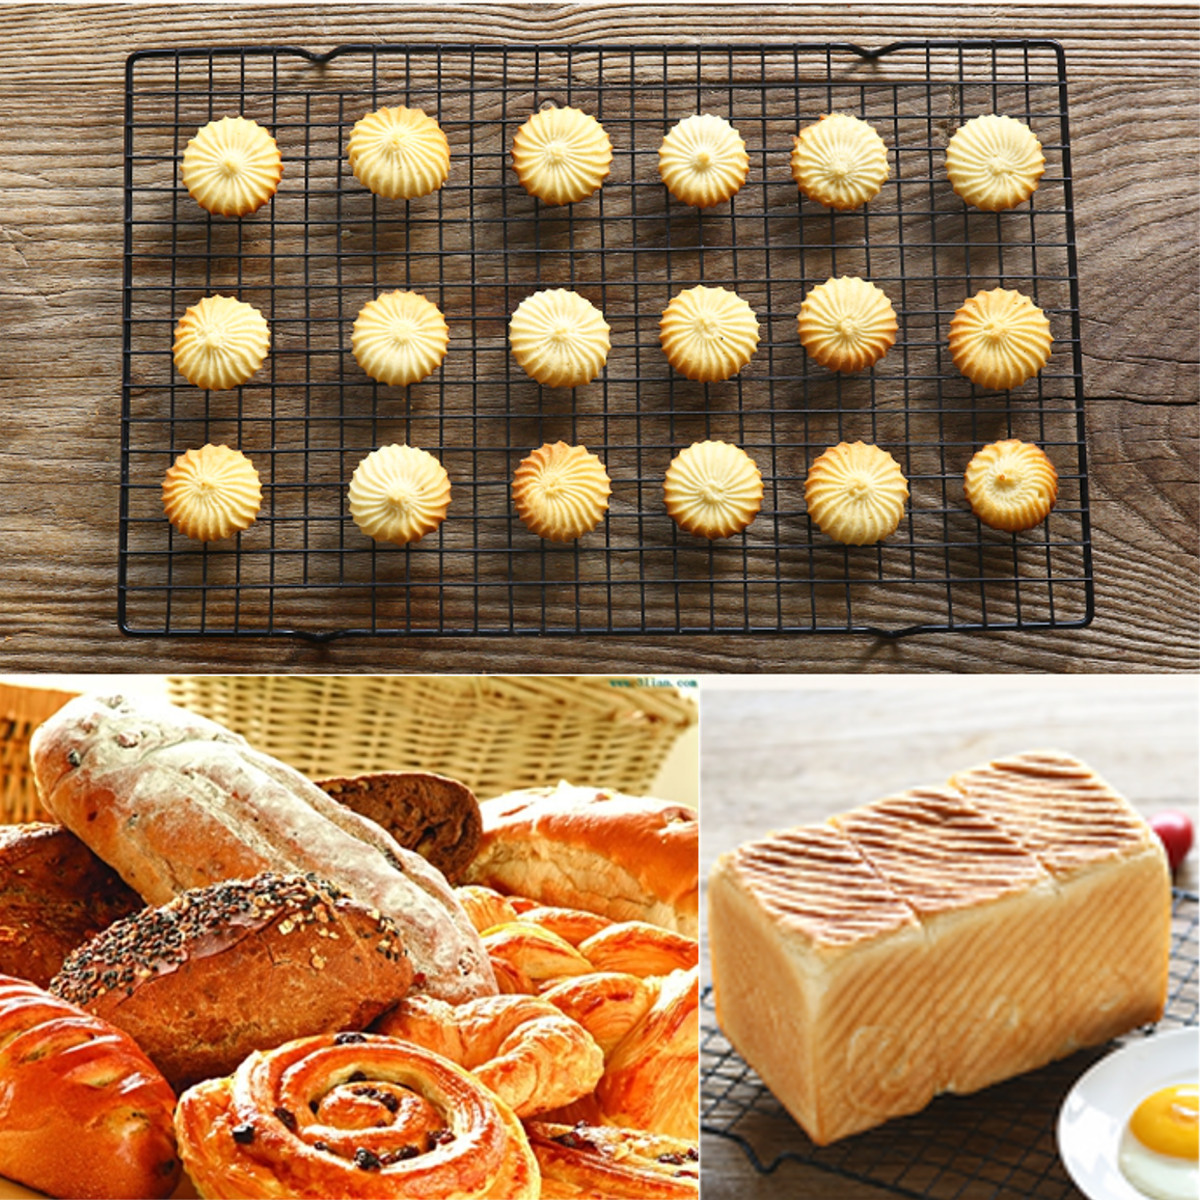 15.7 x10.0 x0.8  Nonstick Cake Cooling Rack Mesh Grid Baking Cookie Biscuit Drying Stand Wire Pan